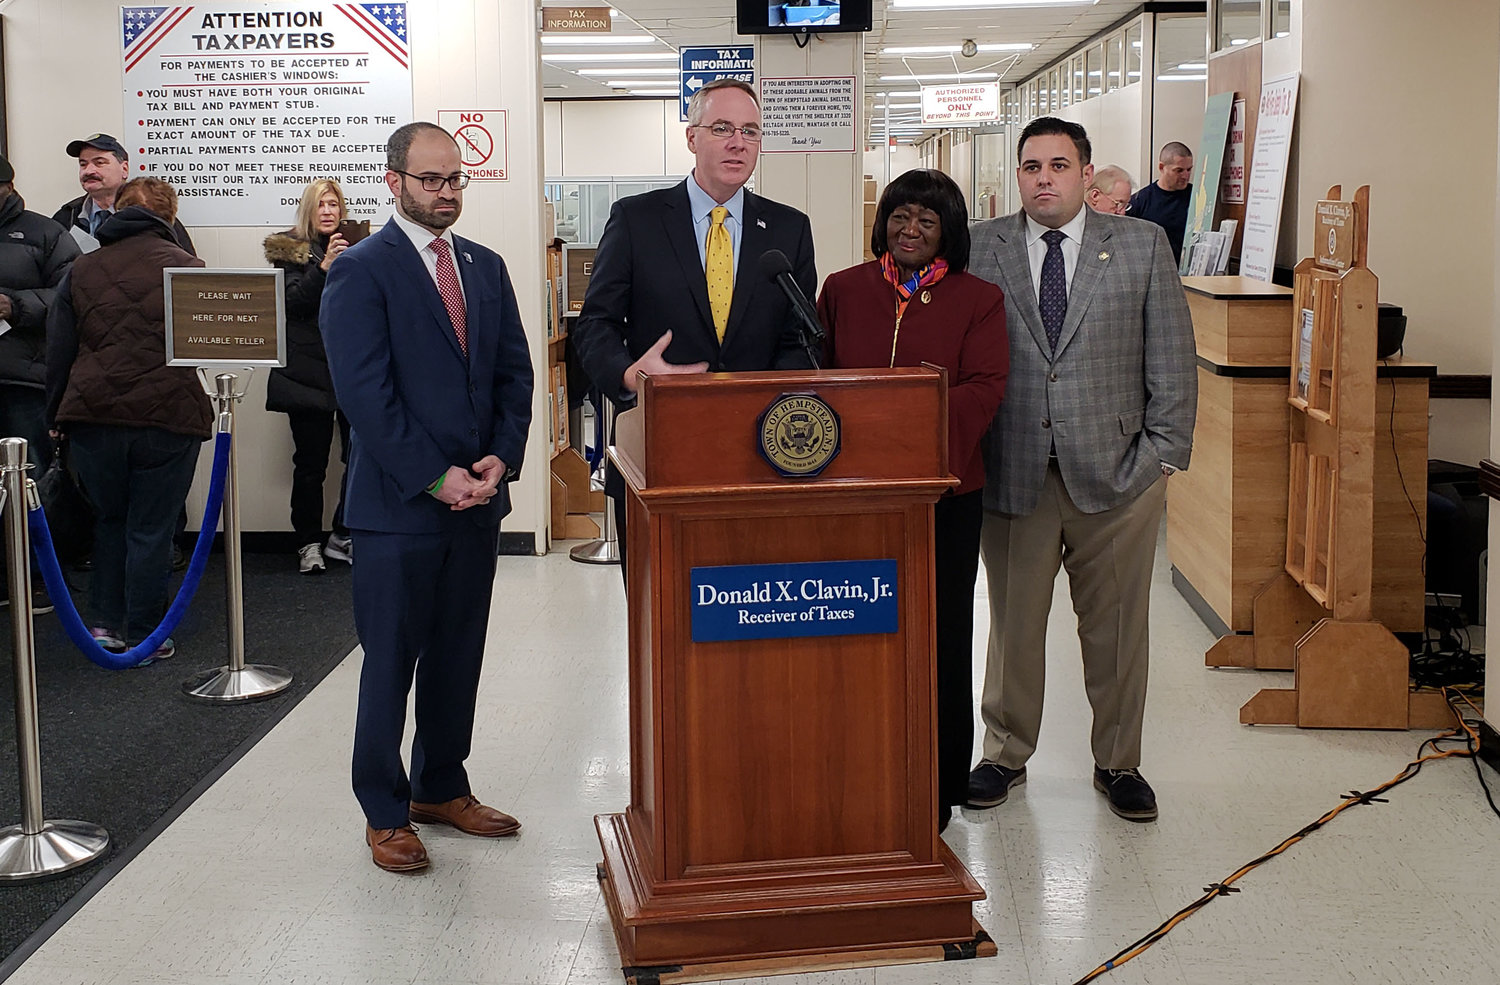 At a news conference on Jan. 17, Town Receiver of Taxes Donald X. Clavin, at lectern, along with State Assemblyman Ed Ra, left, Town Councilwoman Dorothy Goosby and Town Councilman Anthony D'Esposito, called for a 90-day extension of the property tax payment deadline in order to provide relief to federal workers.